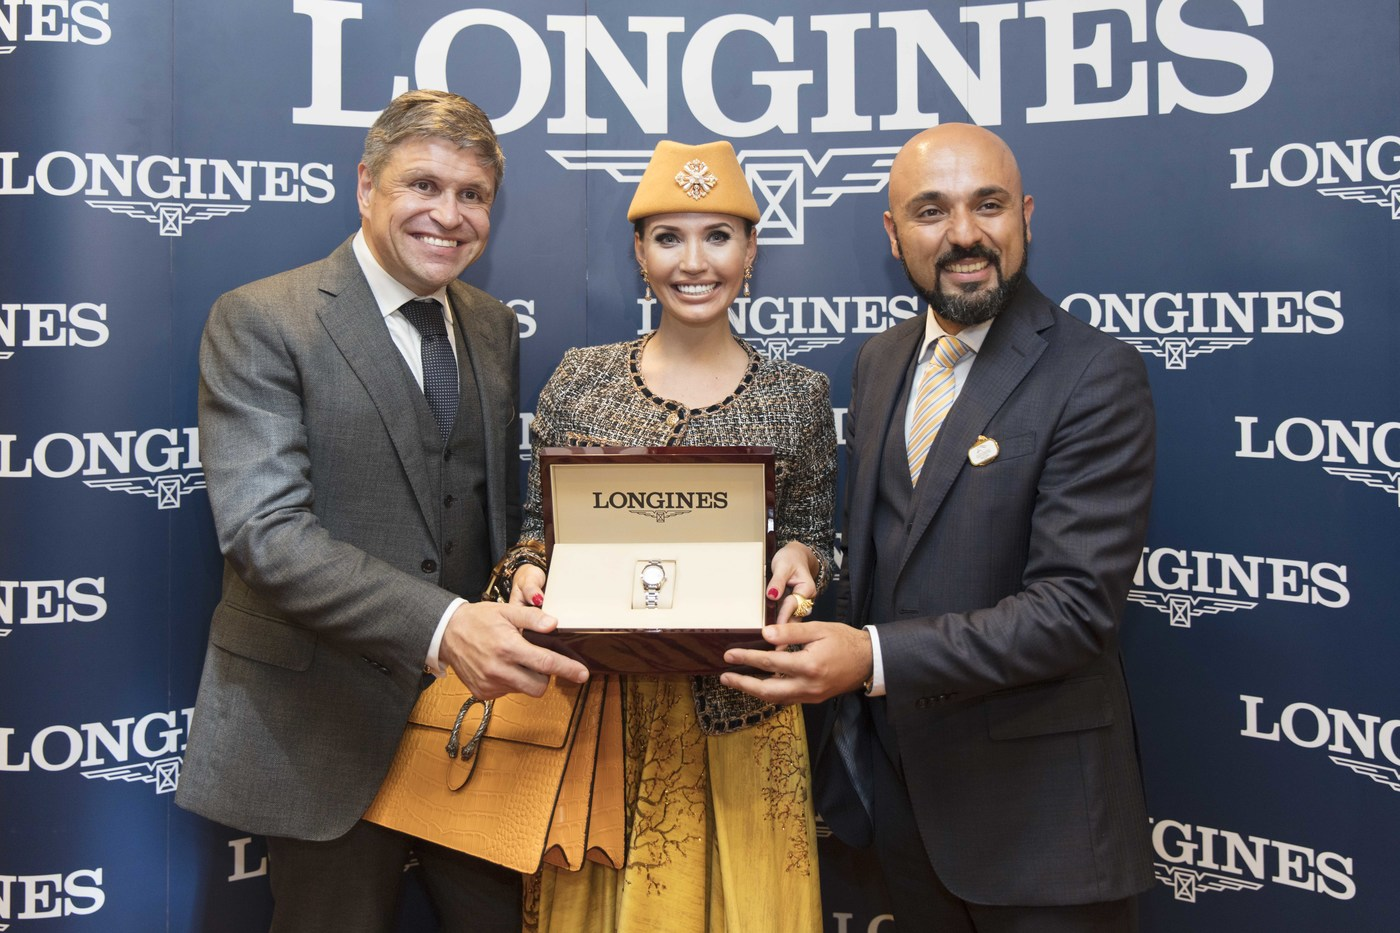 Longines Flat Racing Event: Arrogate, the 2016 Longines World's Best Racehorse, won the Dubai World Cup 5